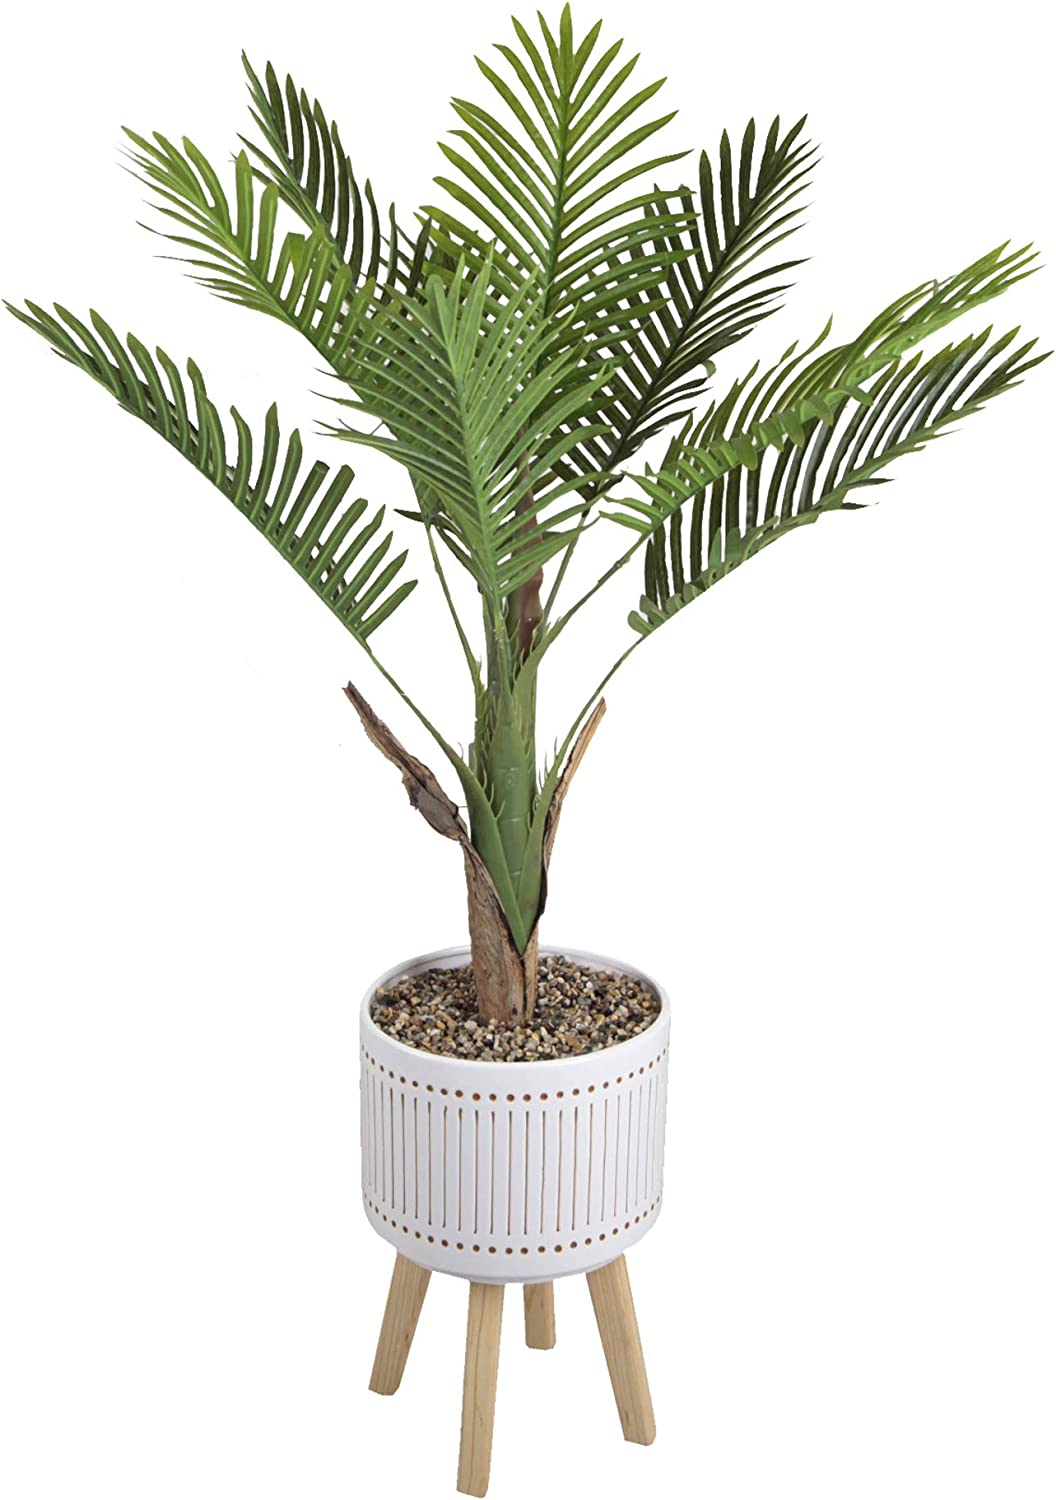 Amazon Com Flora Bunda Artificial Plant Tree Areca Palm Tree 4 Feet Tall In 10 Inch Mid Century Verbena Ceramic Planter On Wood Stand White Home Kitchen